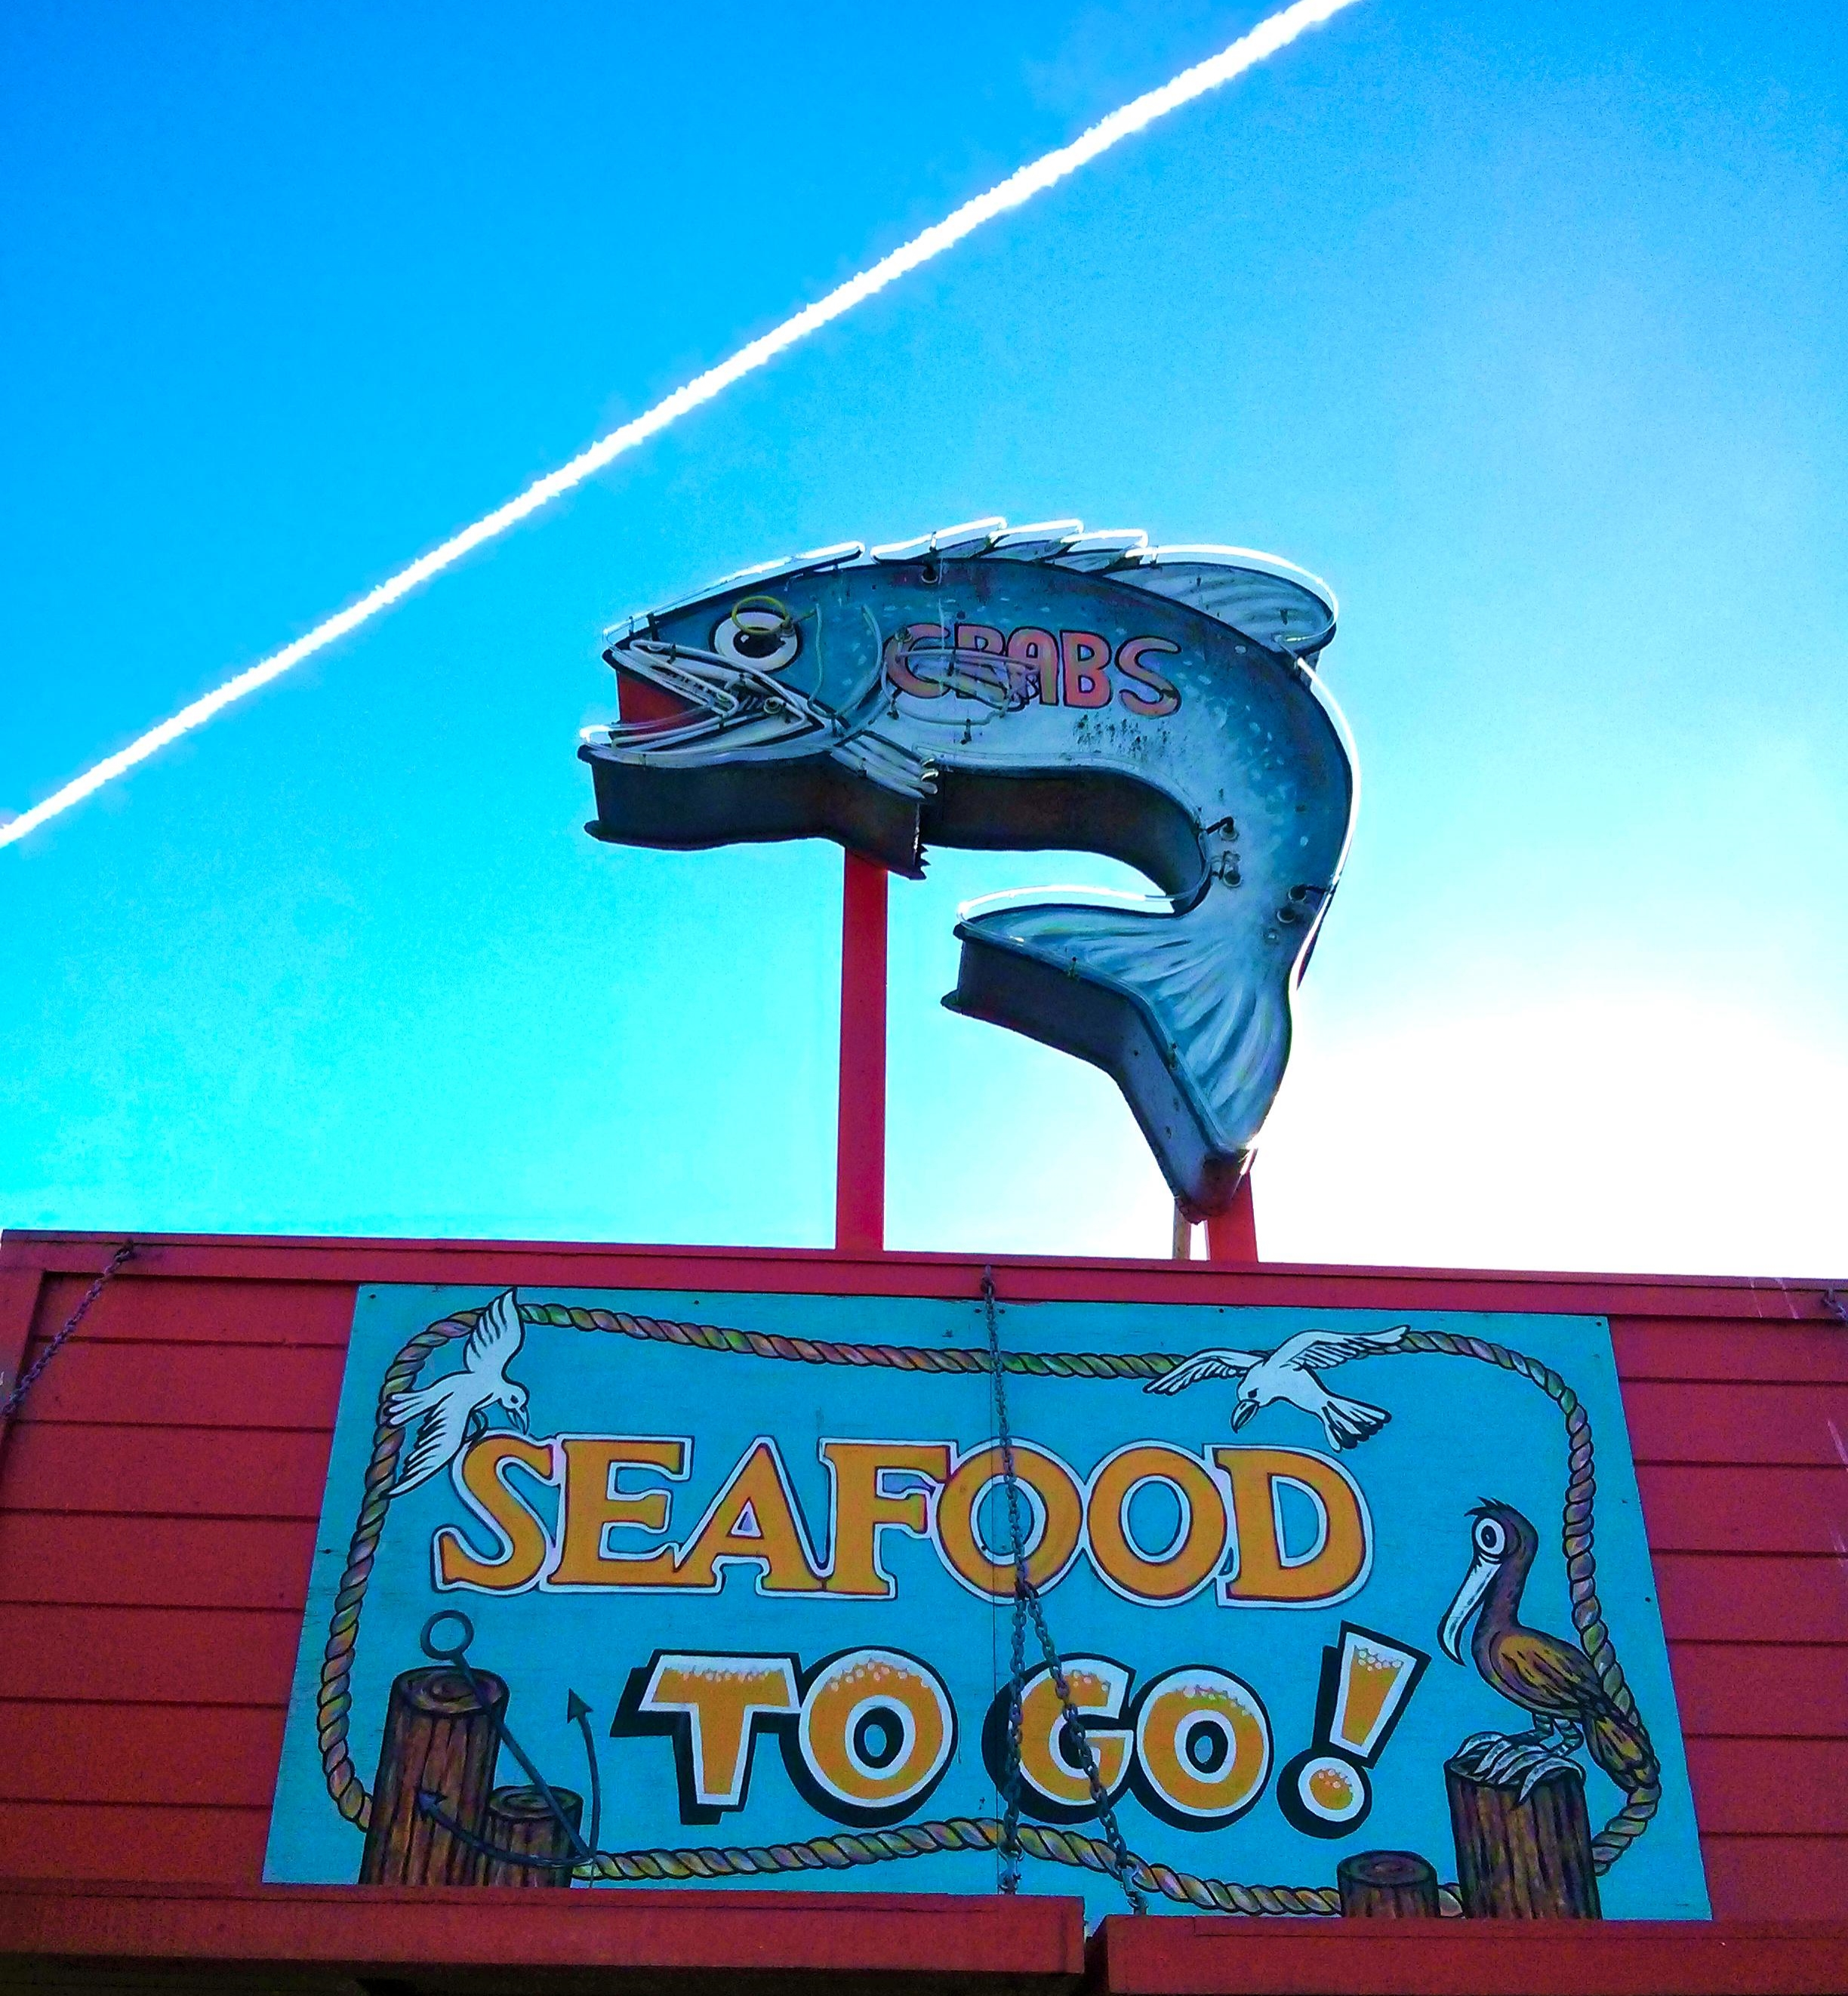 Seafood To Go!